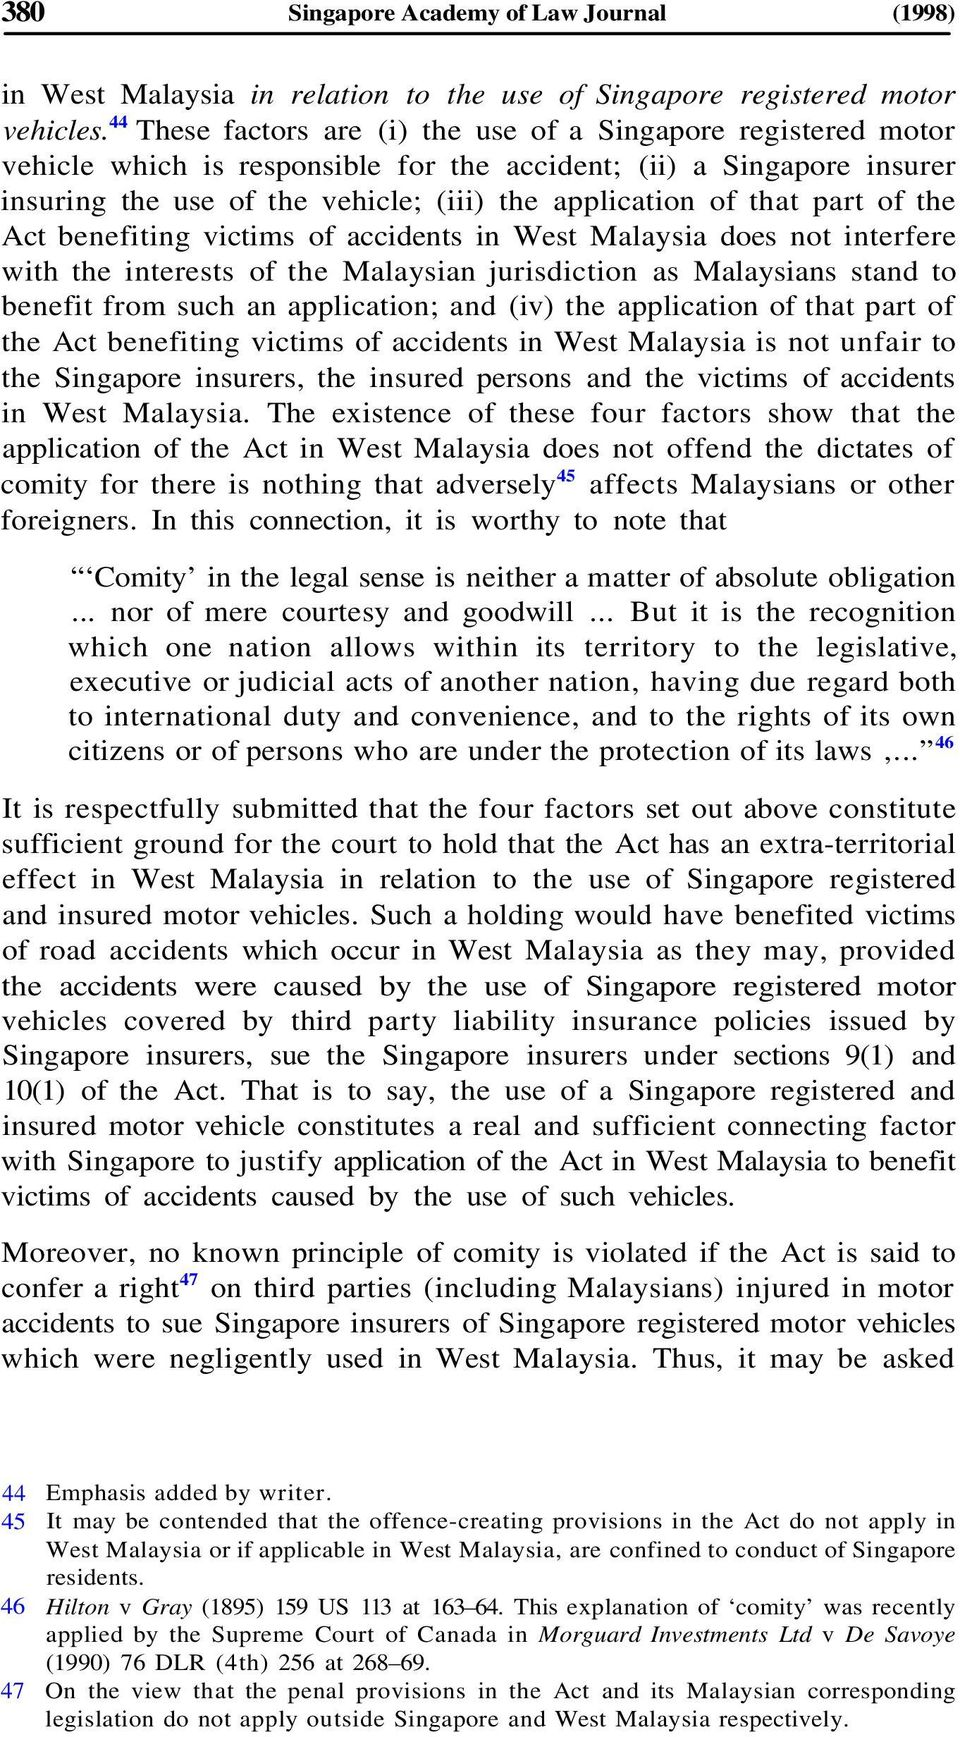 part of the Act benefiting victims of accidents in West Malaysia does not interfere with the interests of the Malaysian jurisdiction as Malaysians stand to benefit from such an application; and (iv)